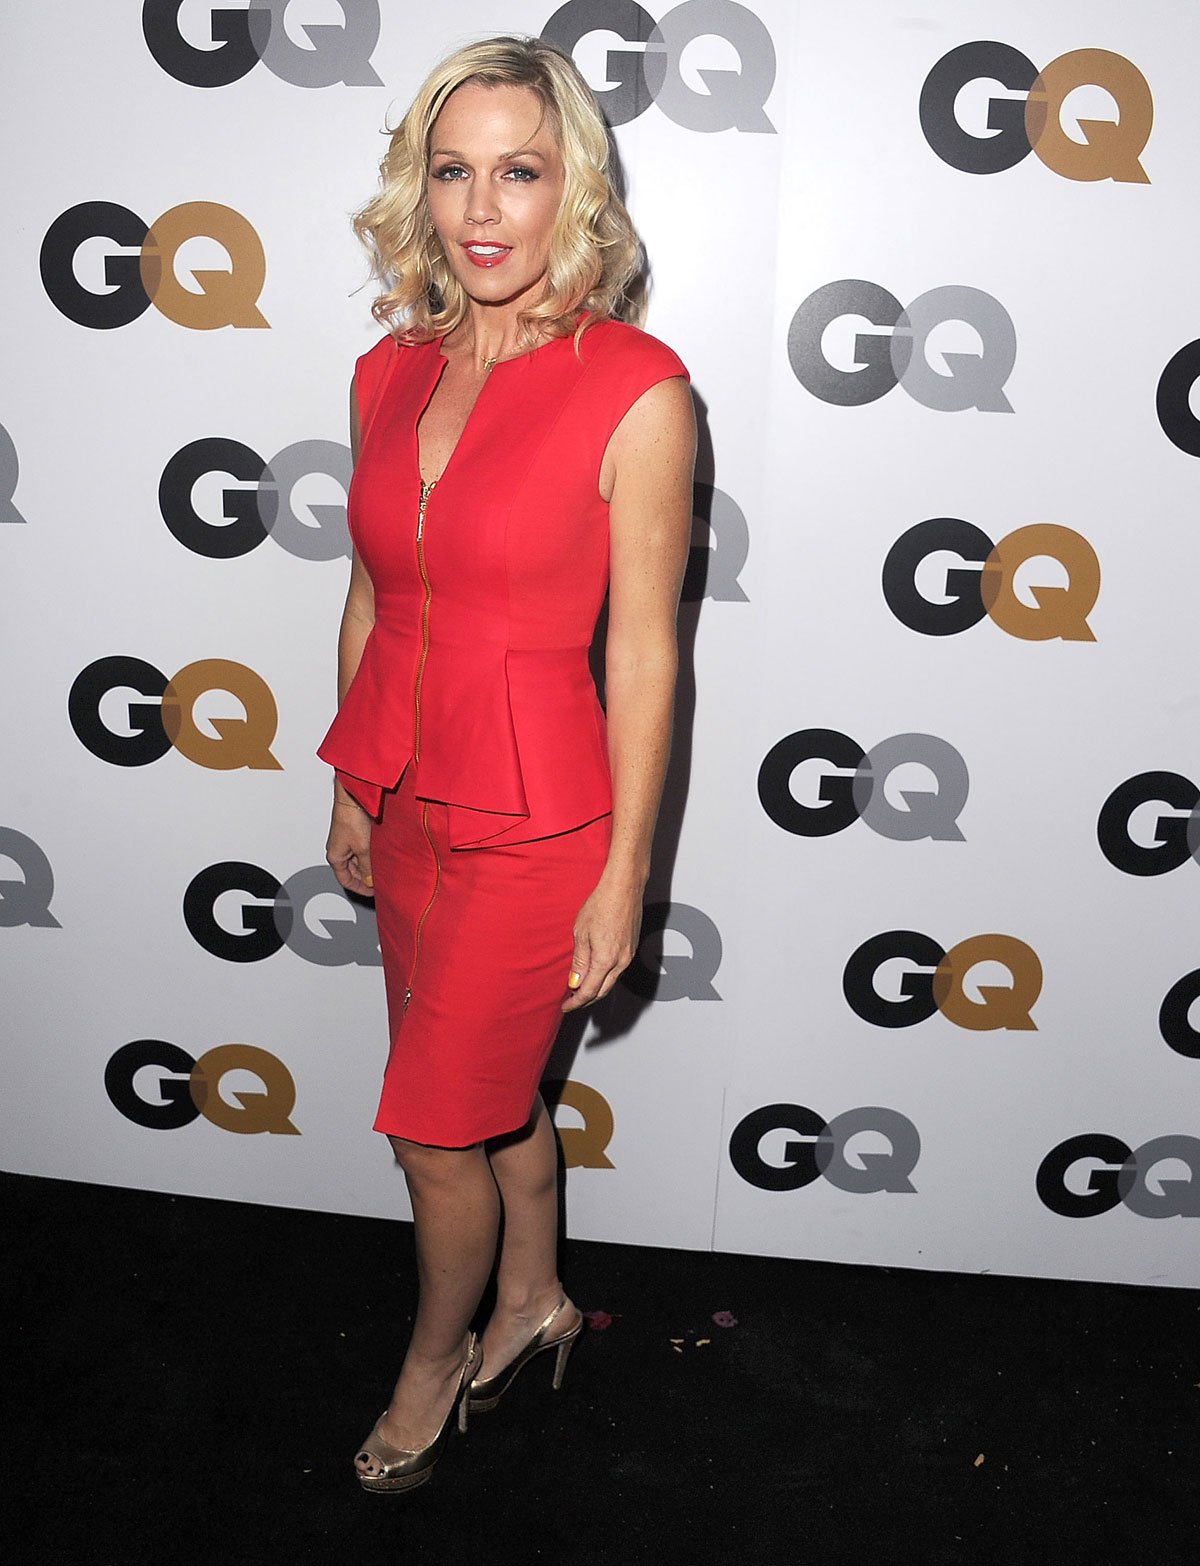 c344b4d8a69 JENNIE GARTH at GQ Men of The Year Party - HawtCelebs